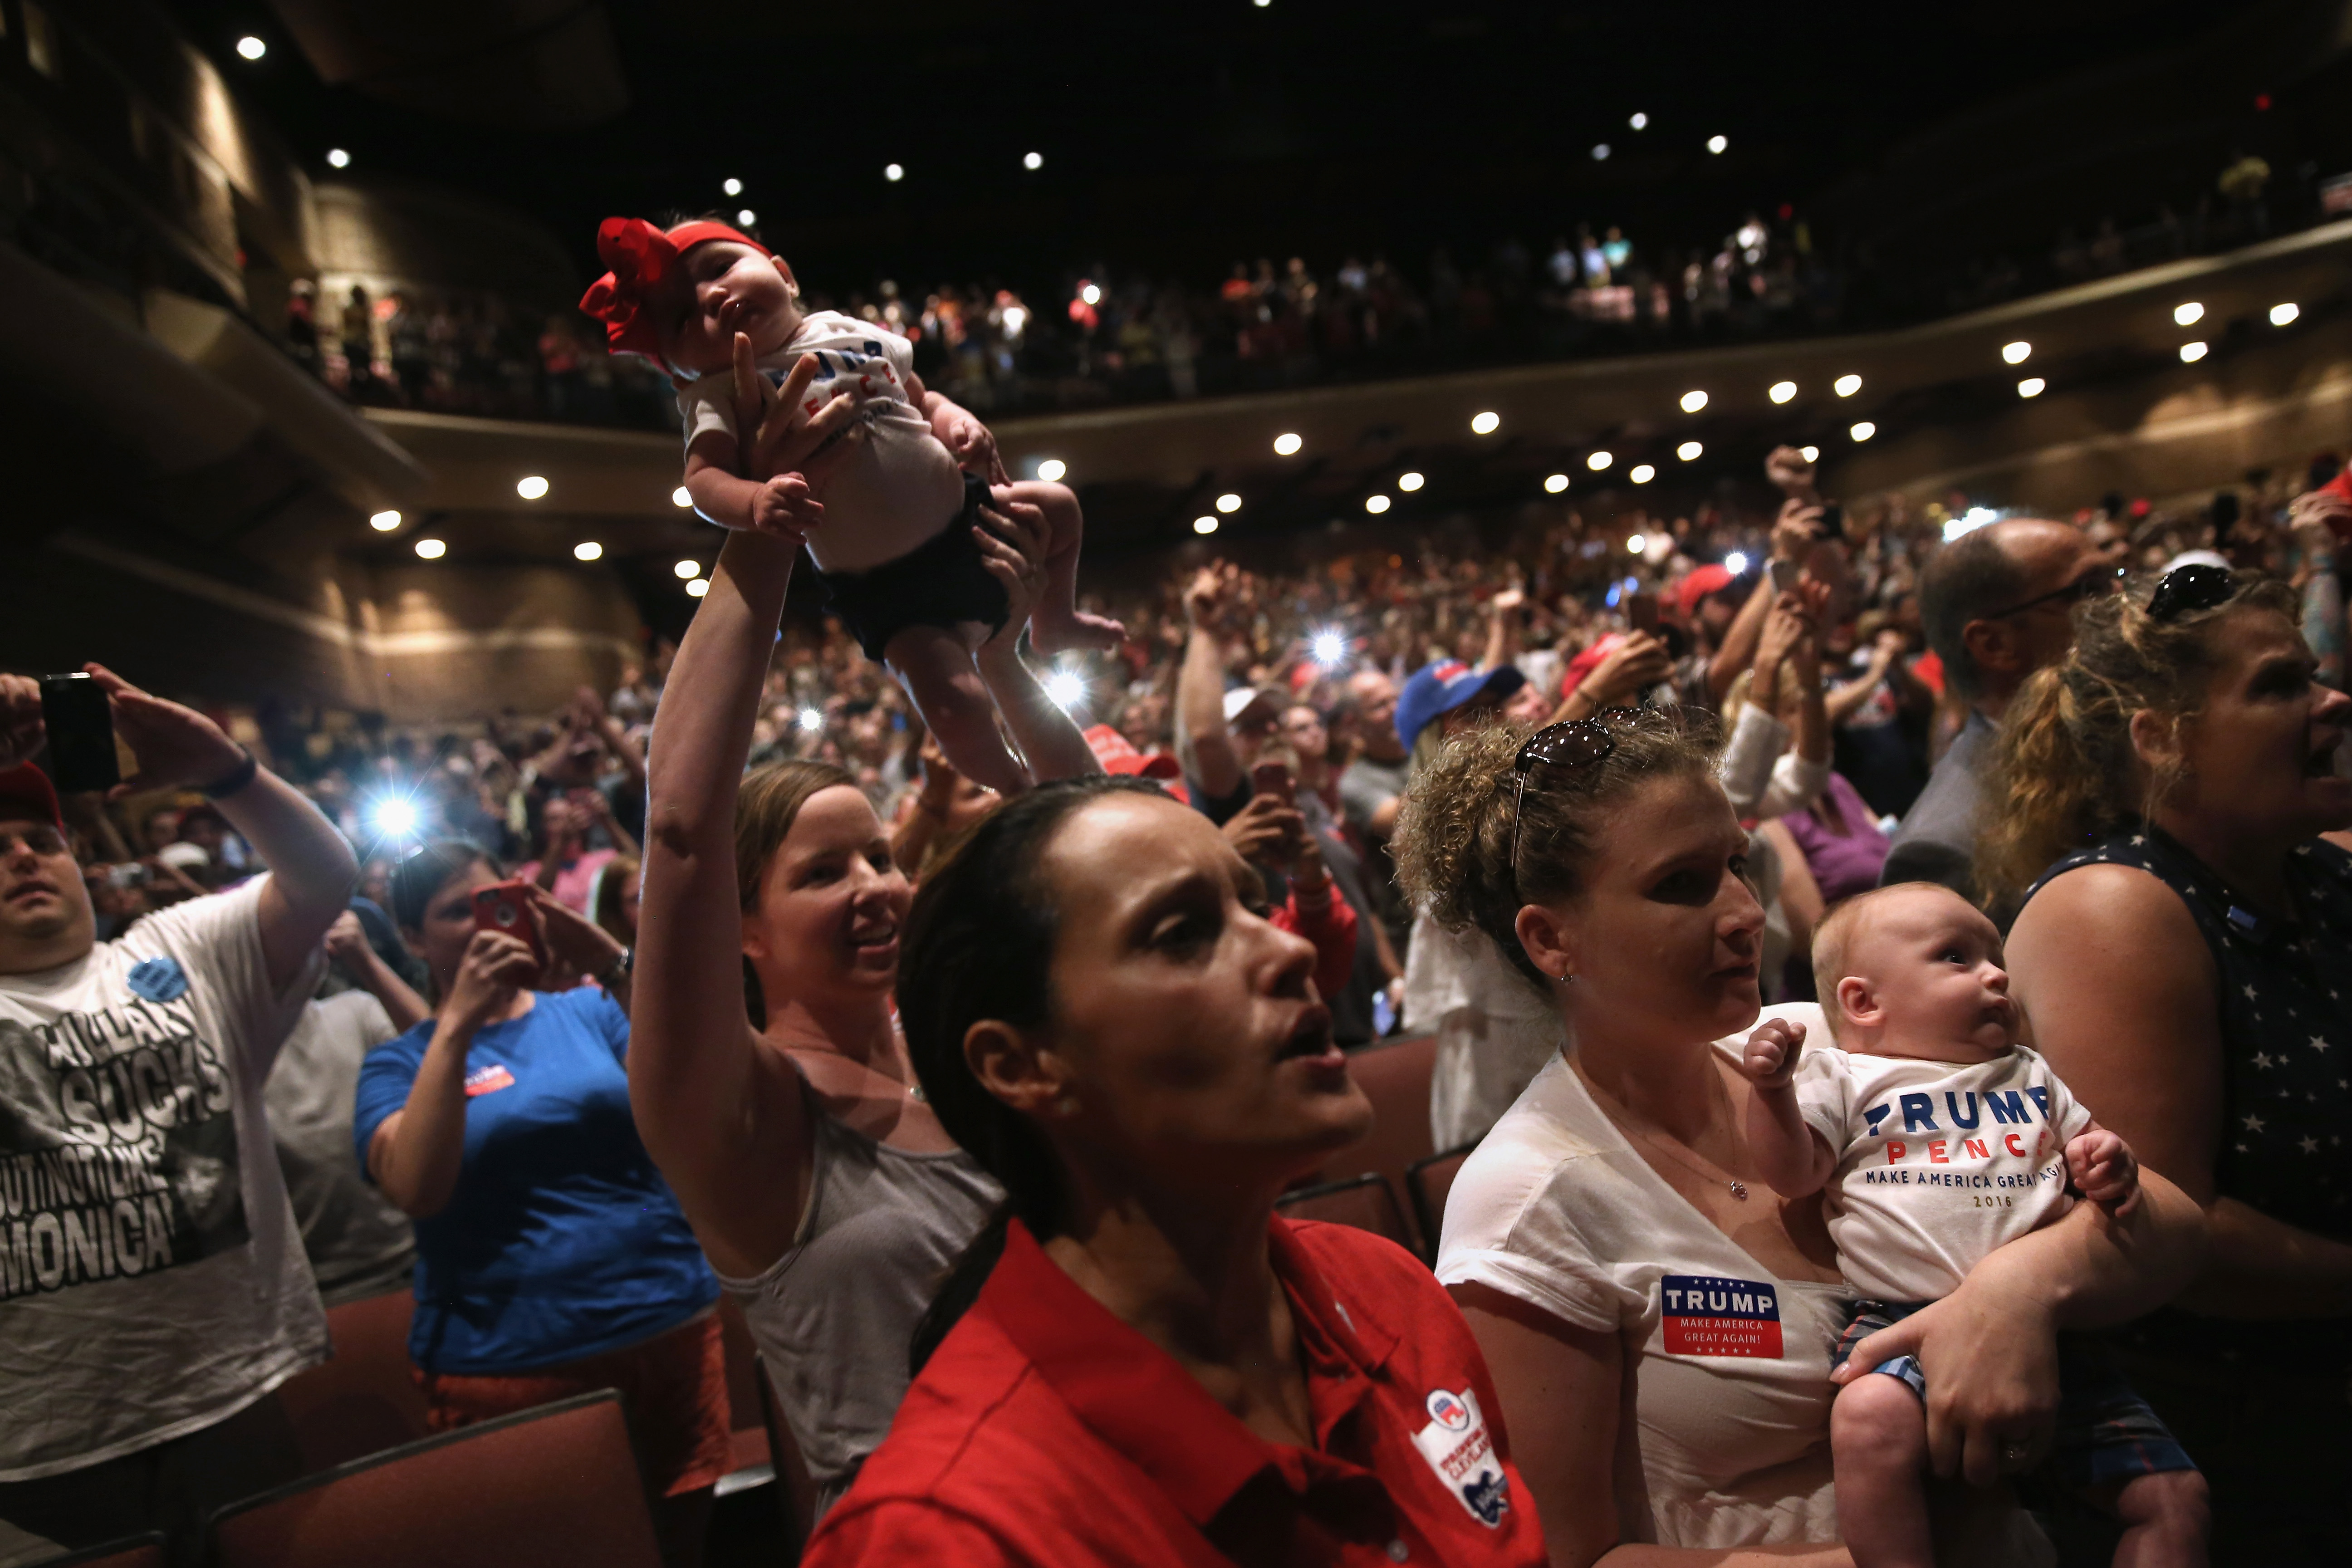 Women hold up their babies festooned for Republican Presidential nominee Donald Trump as he speaks at a campaign rally in Mechanicsburg,  on August 1, 2016.